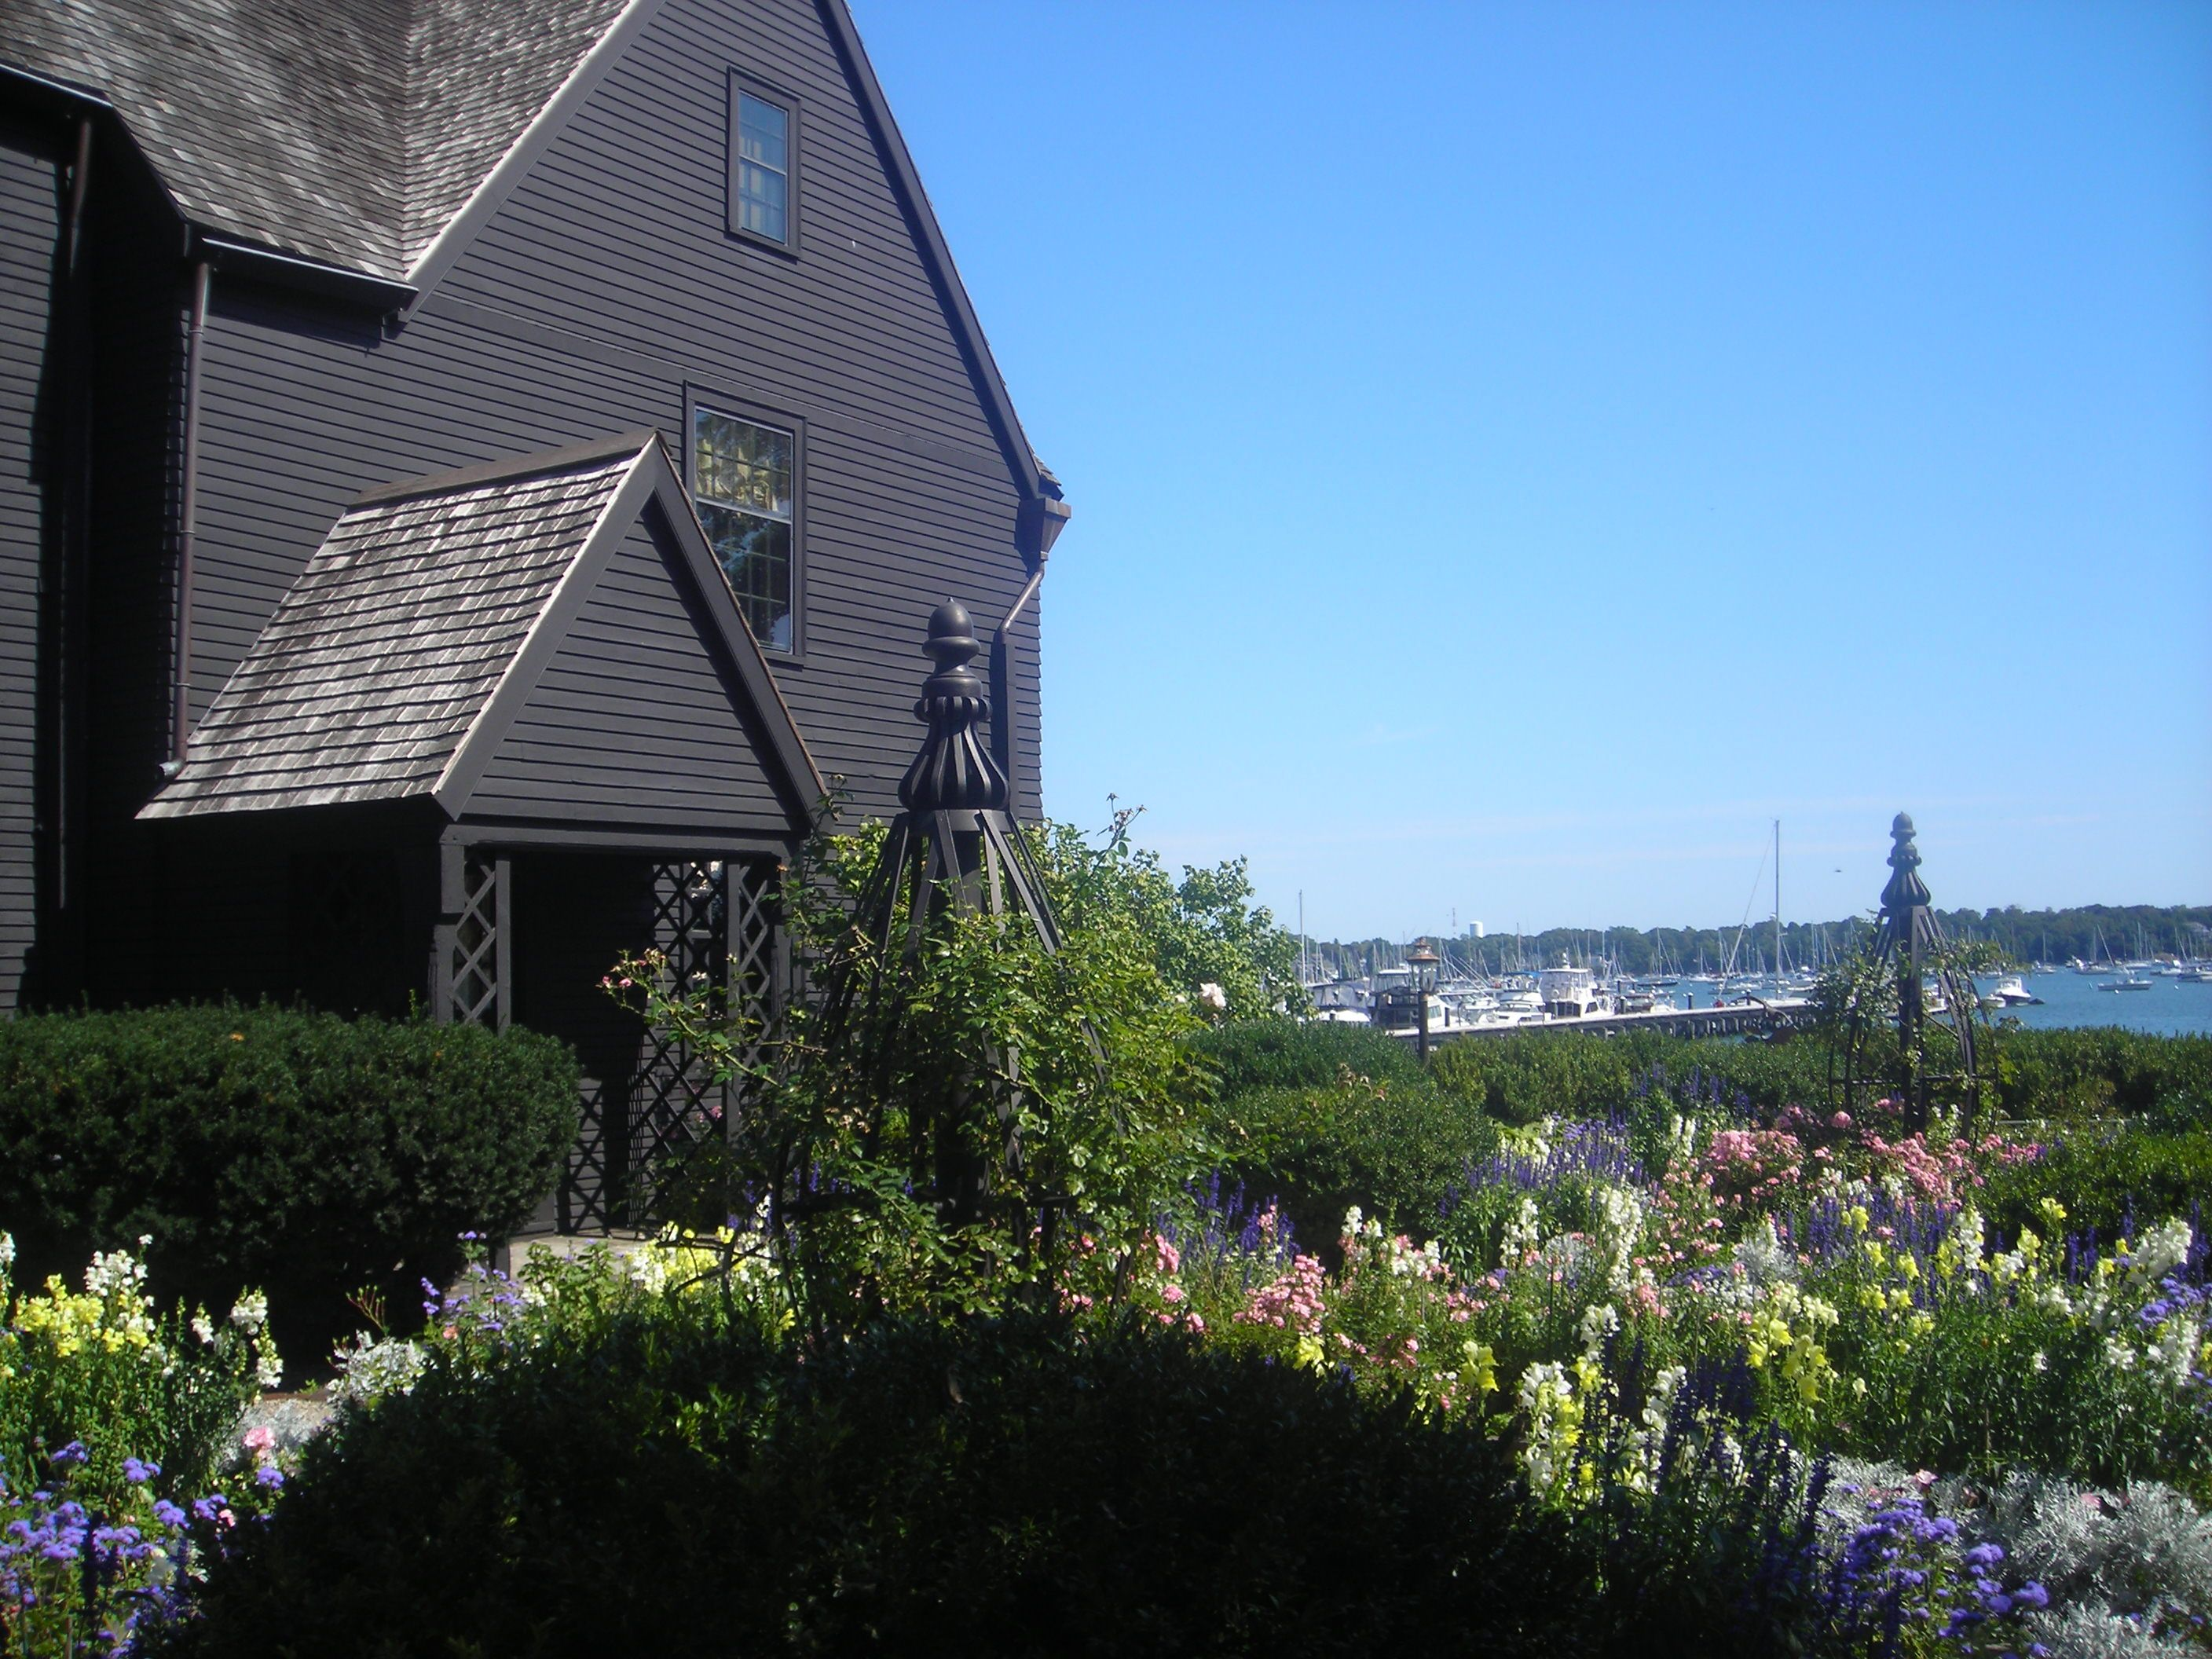 The house of seven gables in salem ma oh the places you for Salem house